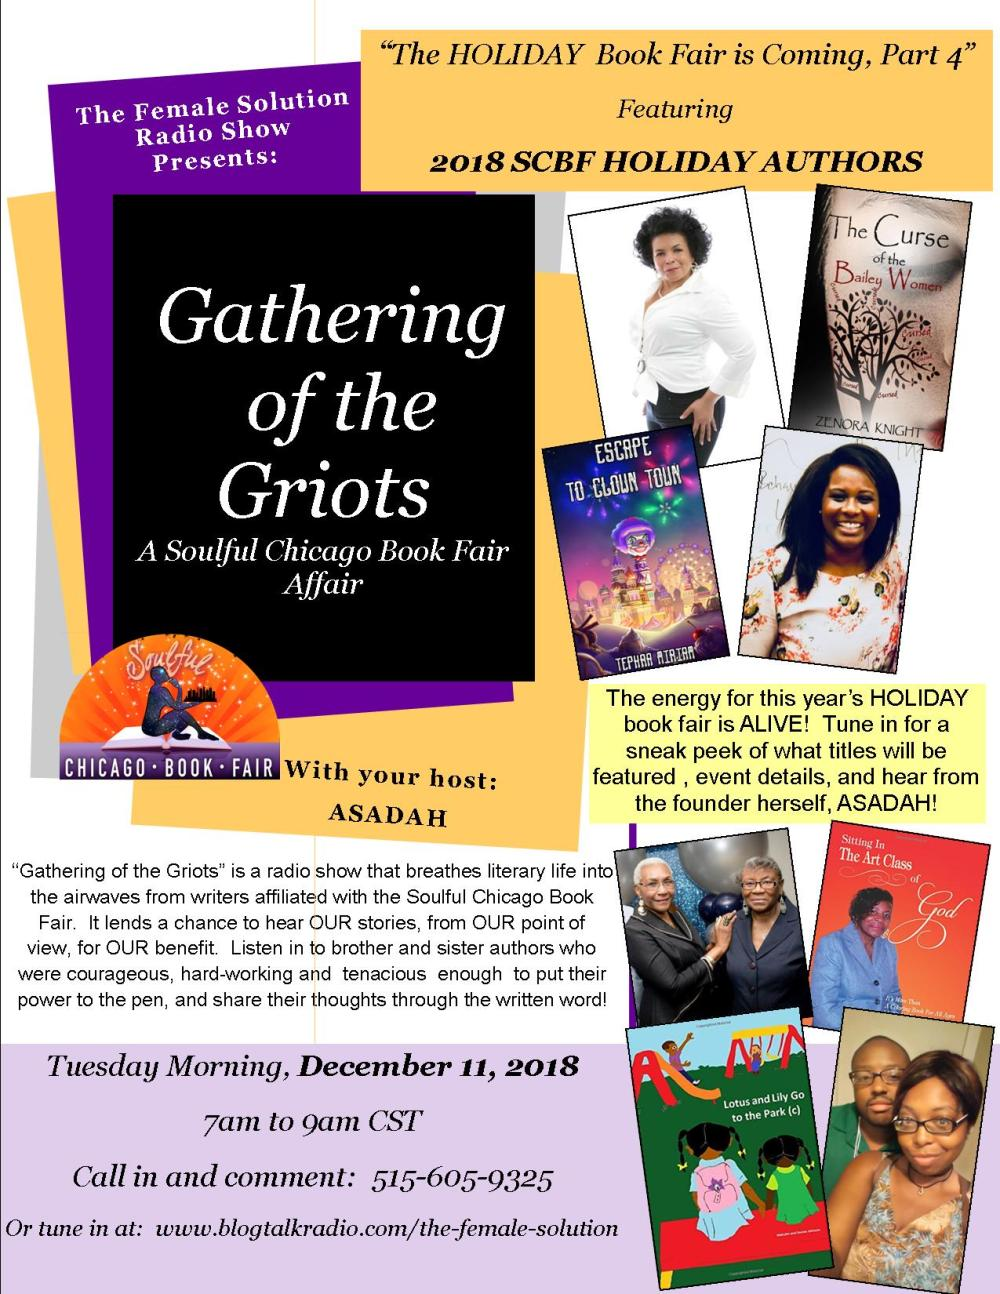 2018 GATHERING OF THE GRIOTS HOLIDAY FLYER - PART 4